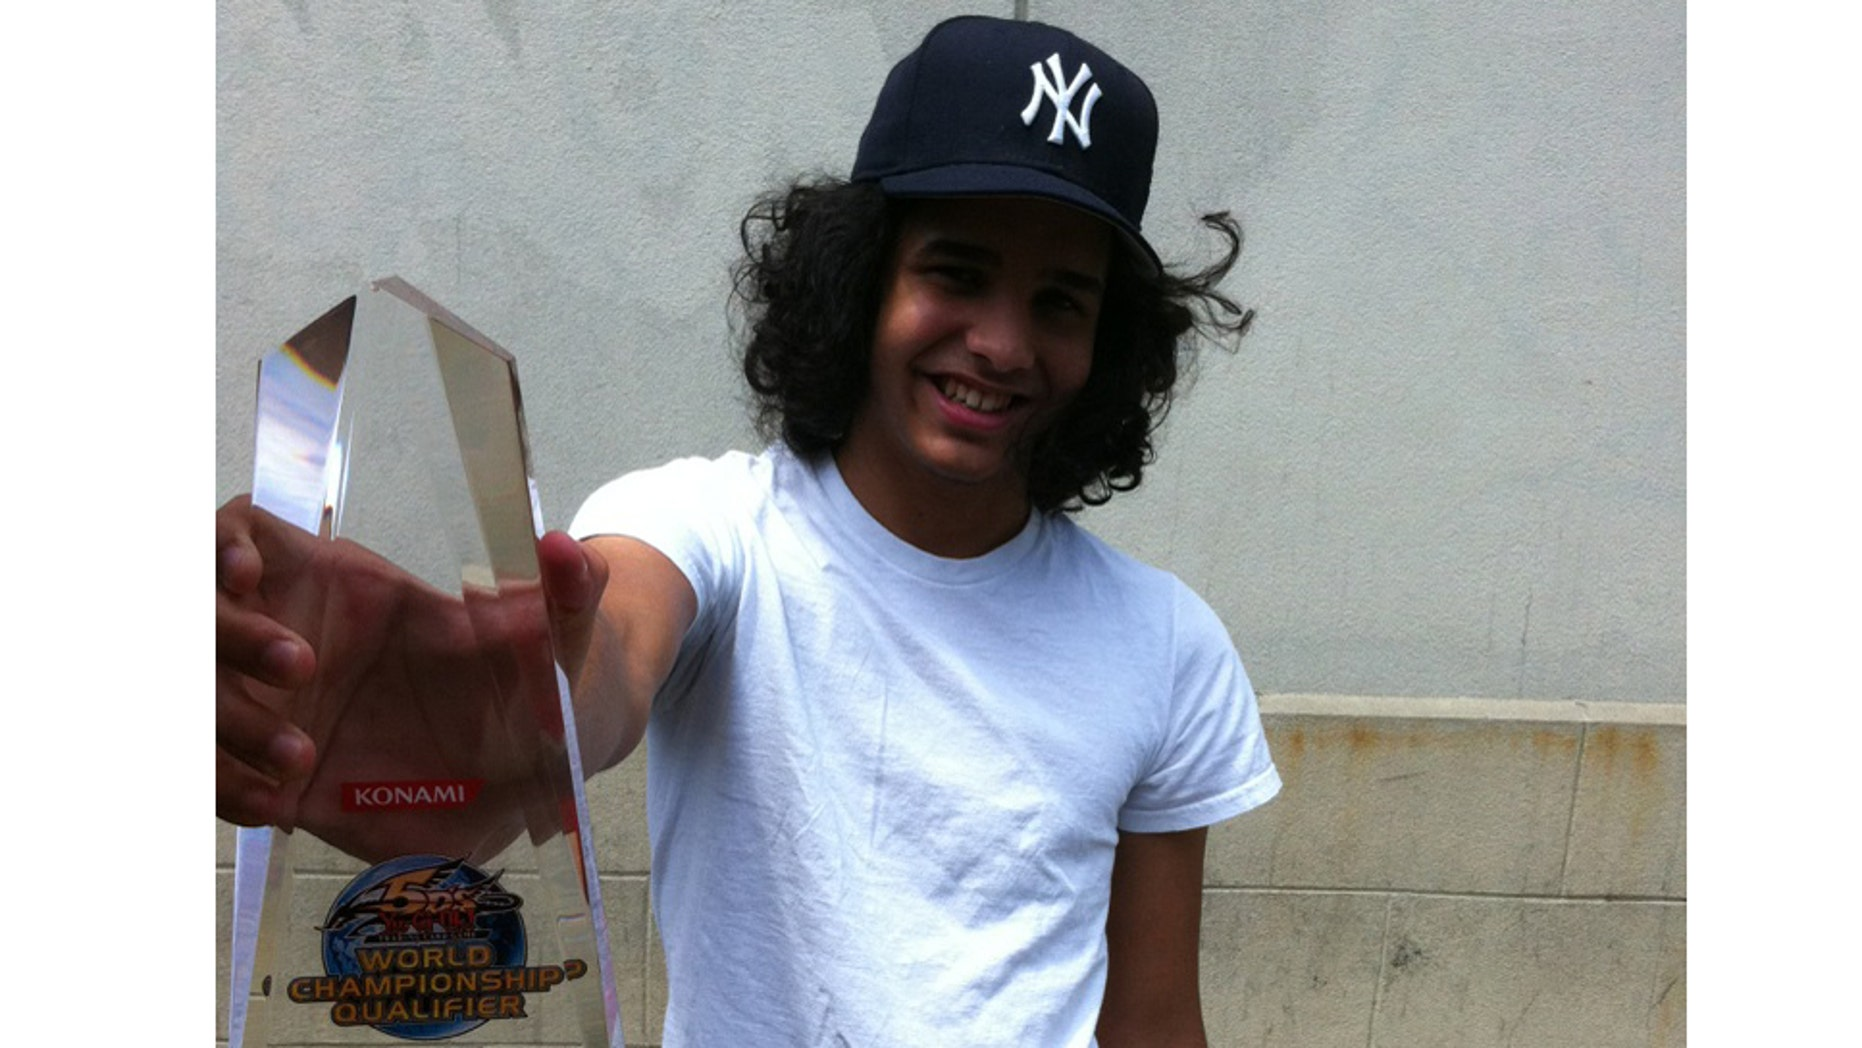 Hansel Aguero is representing the U.S. in the Yu-Gi-Oh! World Championship in Amsterdam.